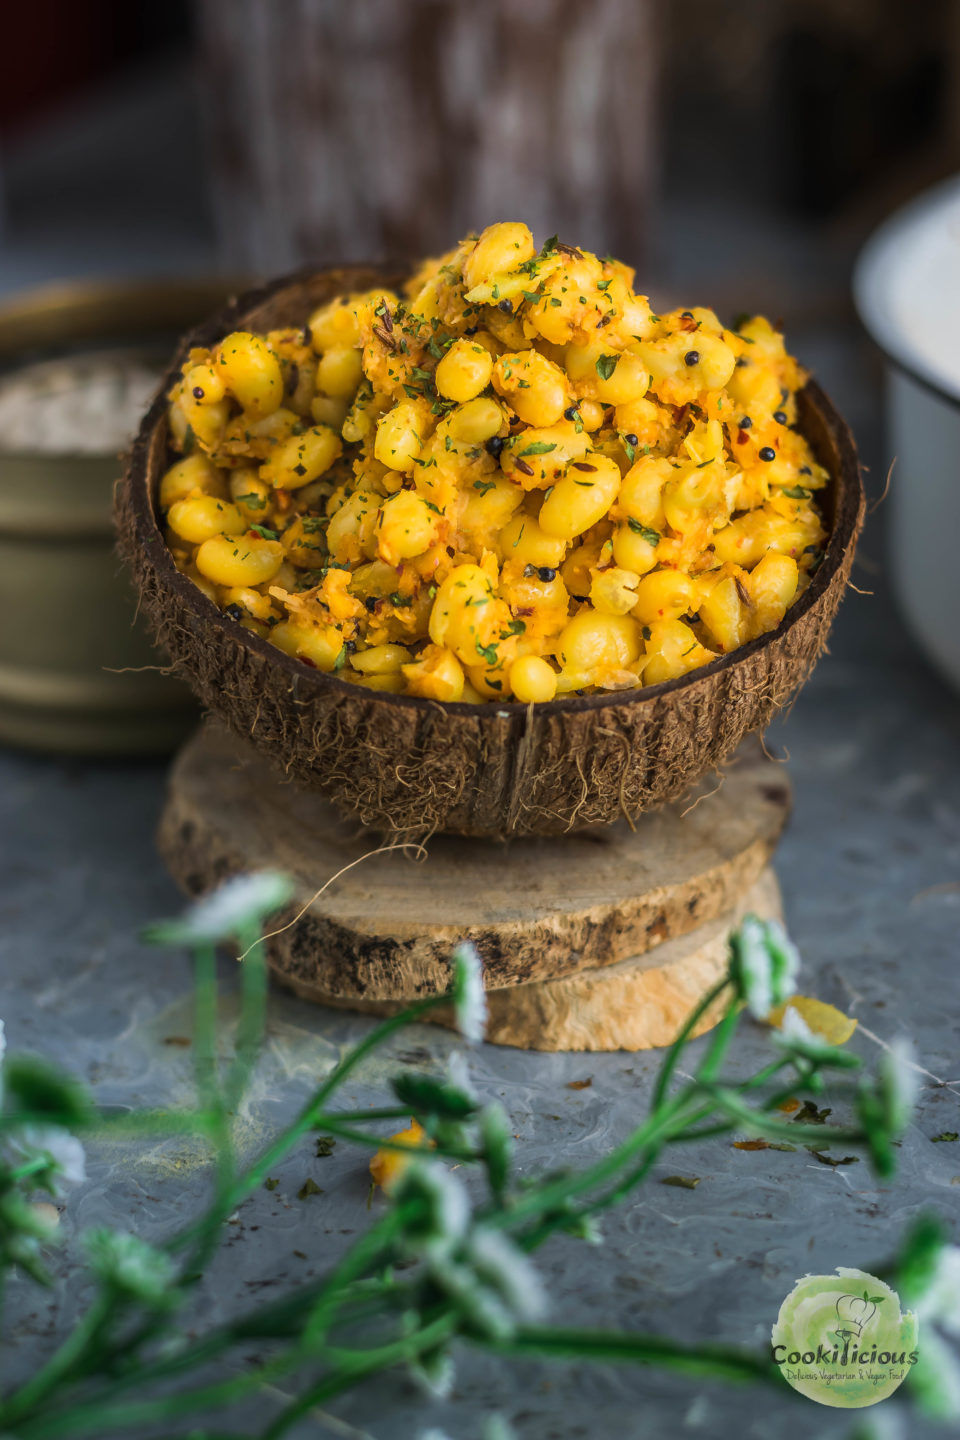 navy beans sundal salad in an empty coconut shell